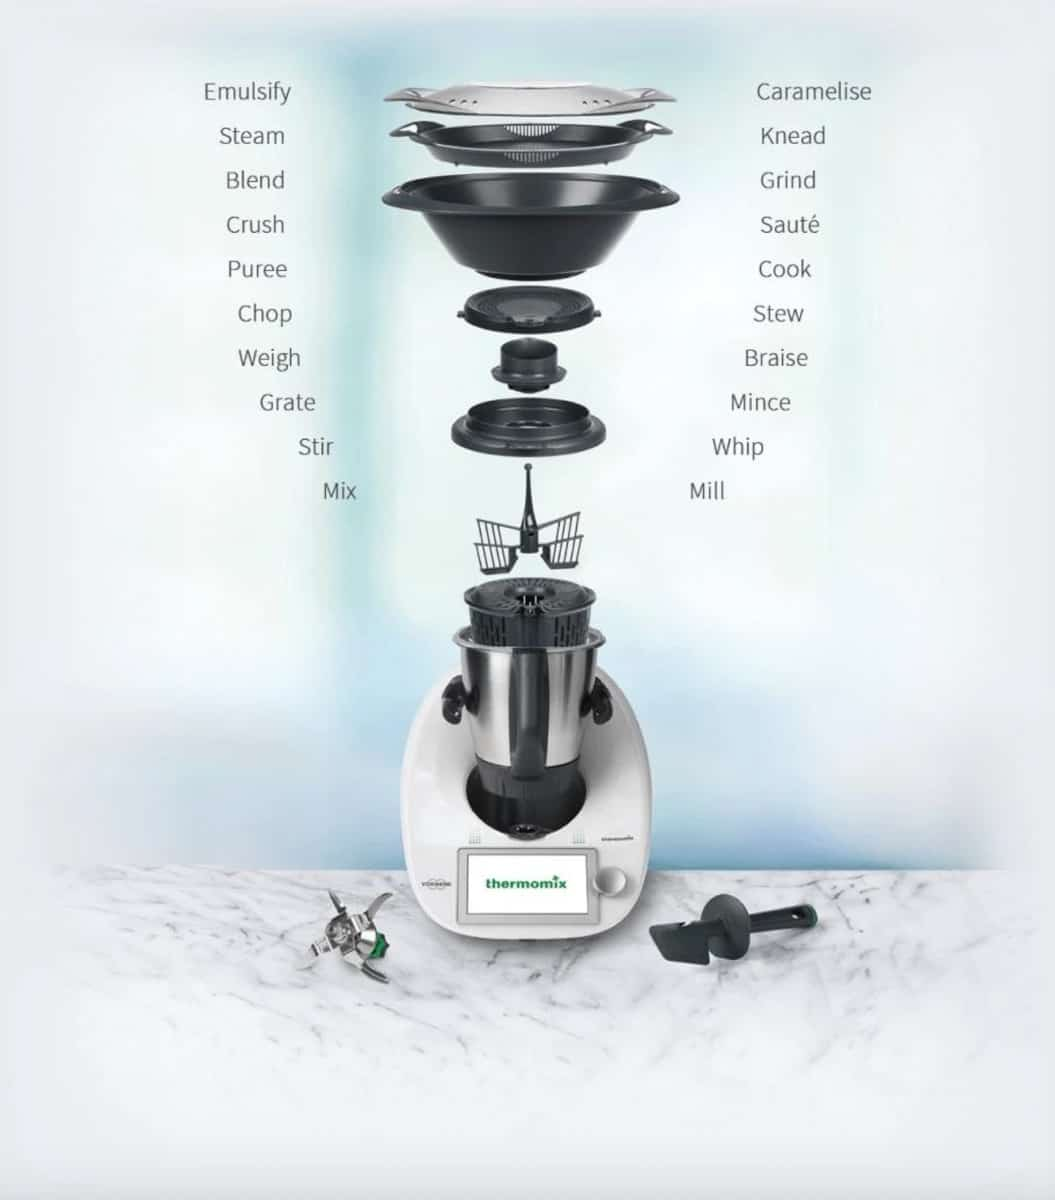 An image showing a Thermomix 6 model with a list of it's functions surrounding it.